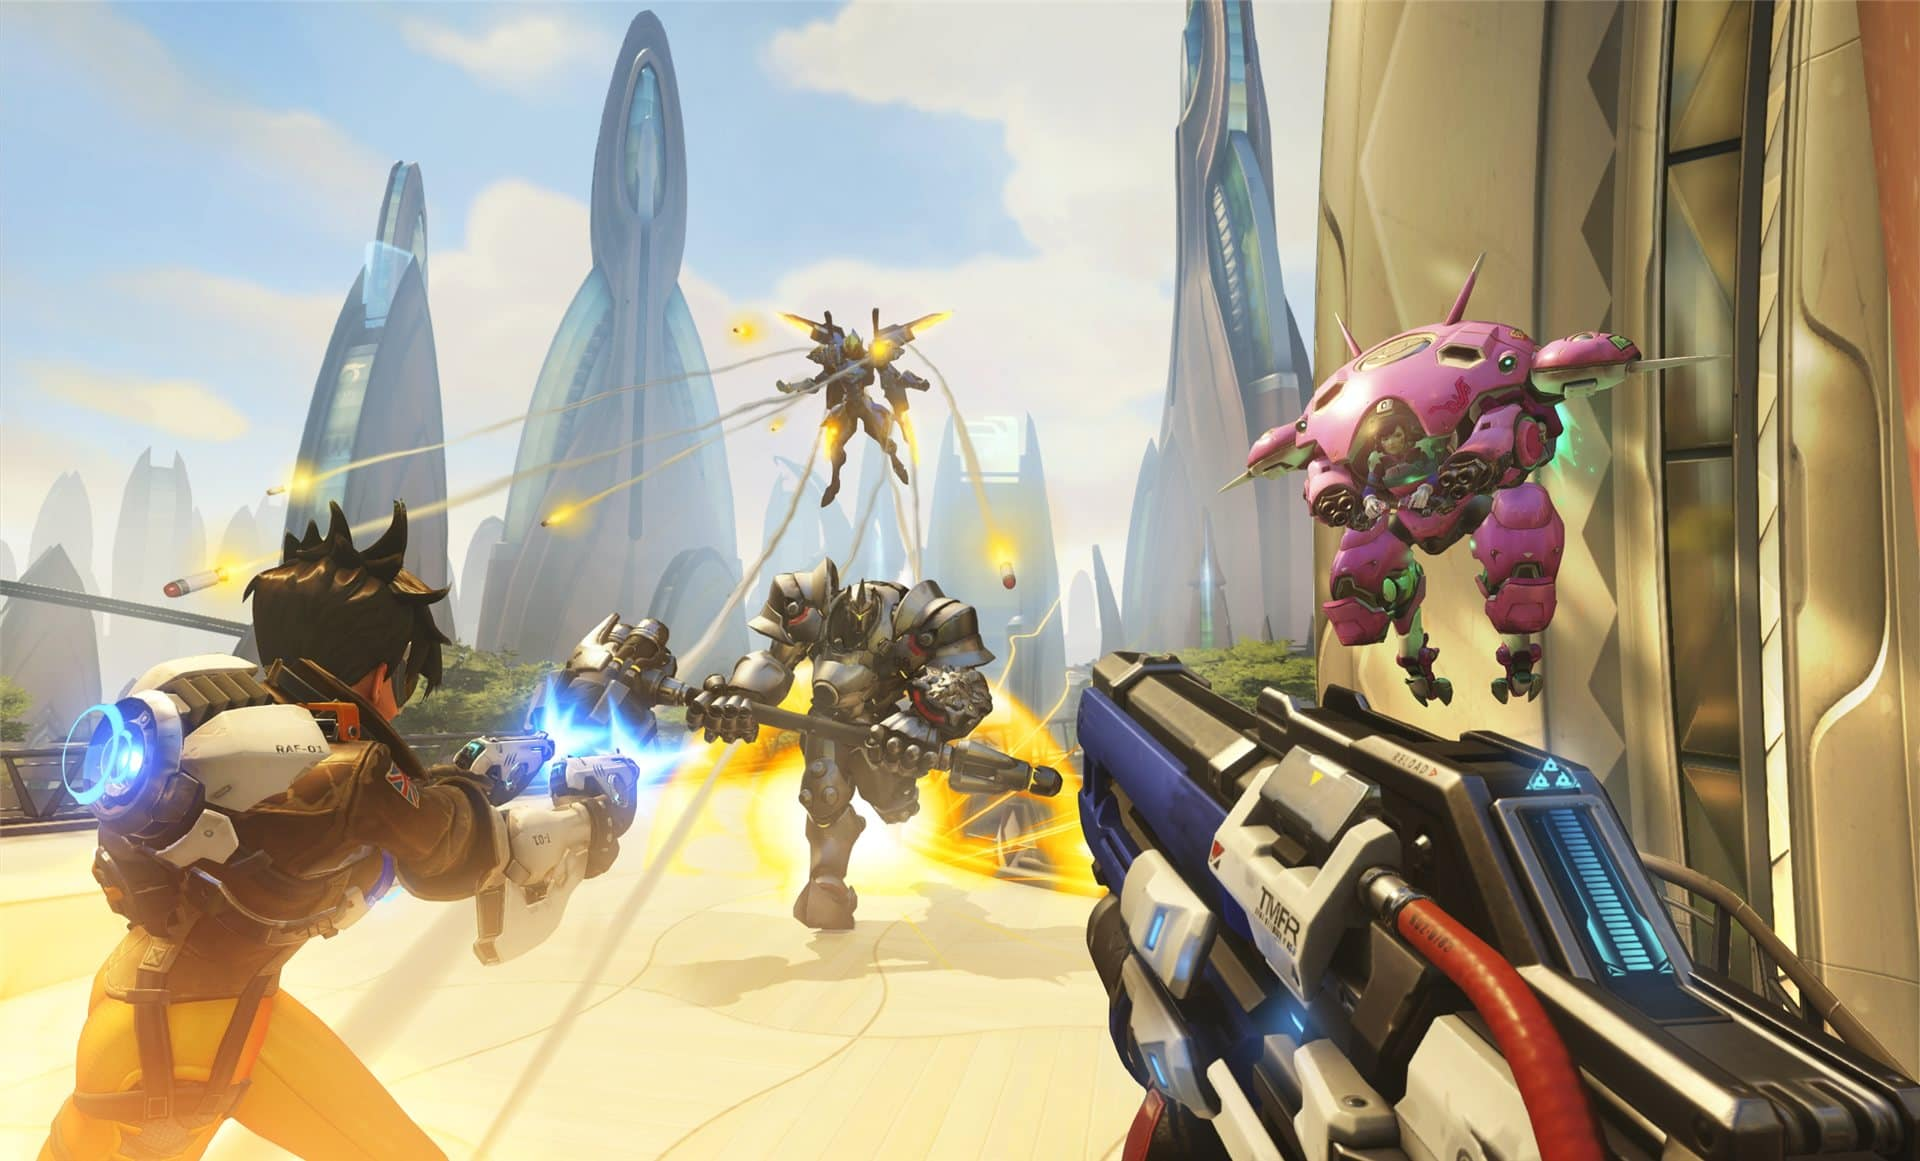 Overwatch is coming to Nintendo Switch (Official) with Australian release date and pricing